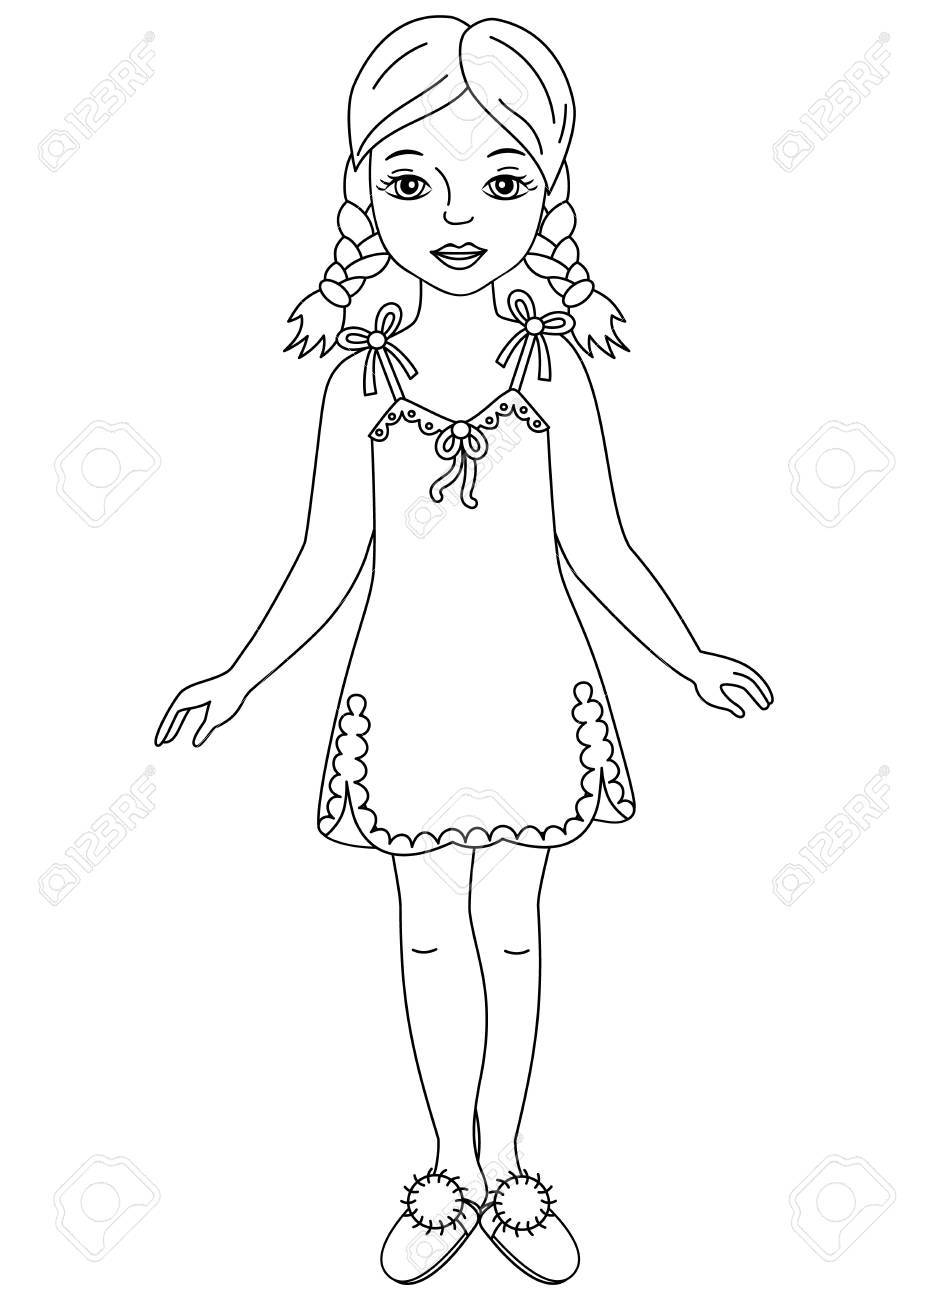 Lady in dress black and white clipart clip art library Woman in dress clipart black and white 2 » Clipart Portal clip art library